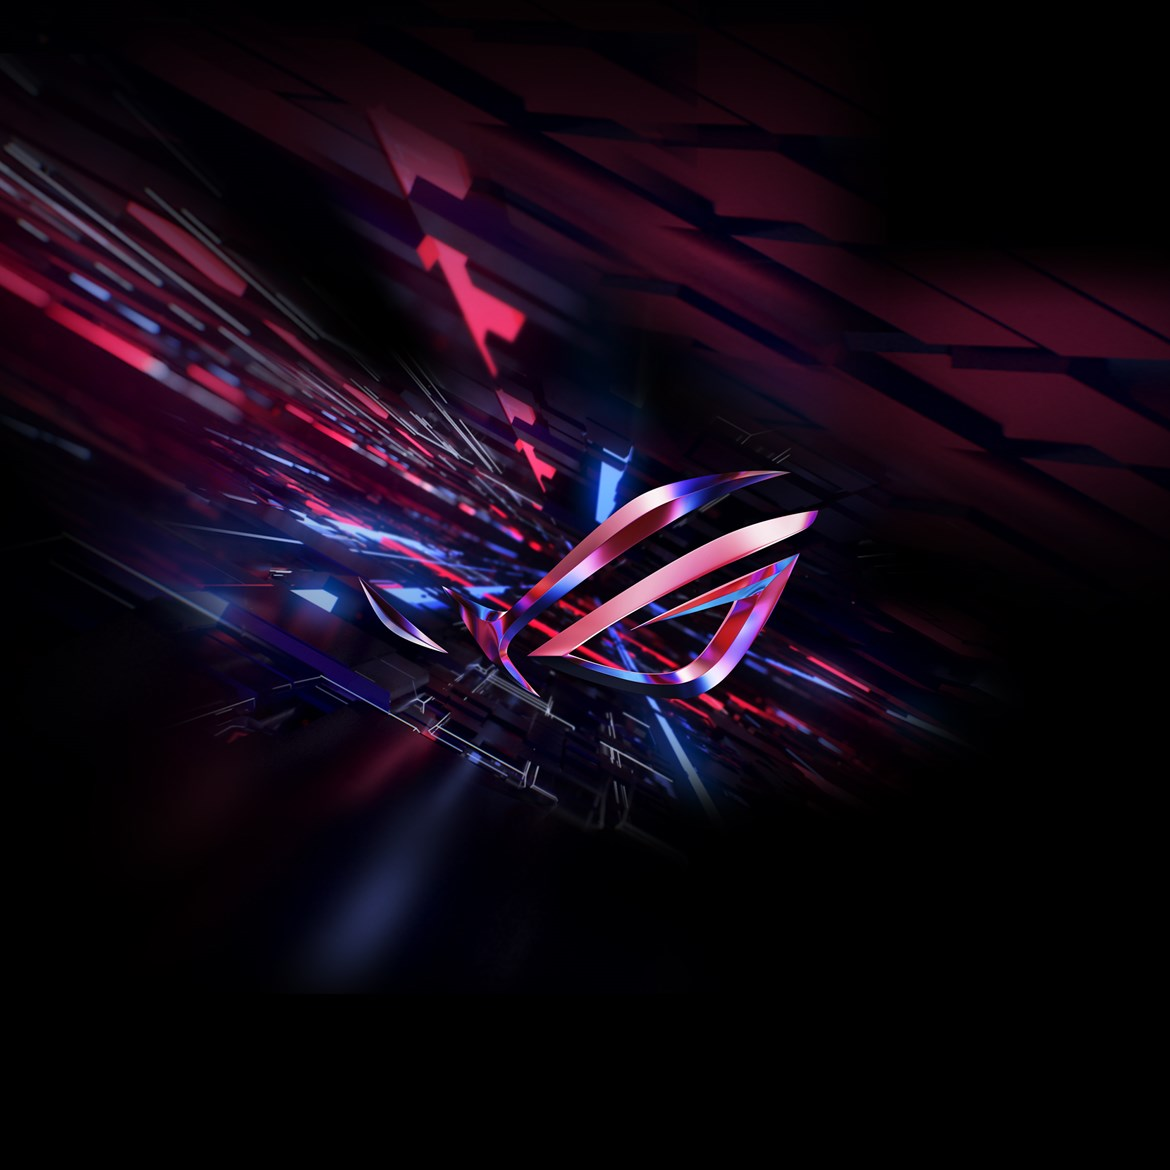 Download Asus Rog Phone 3 Wallpapers And Ported Live Wallpapers